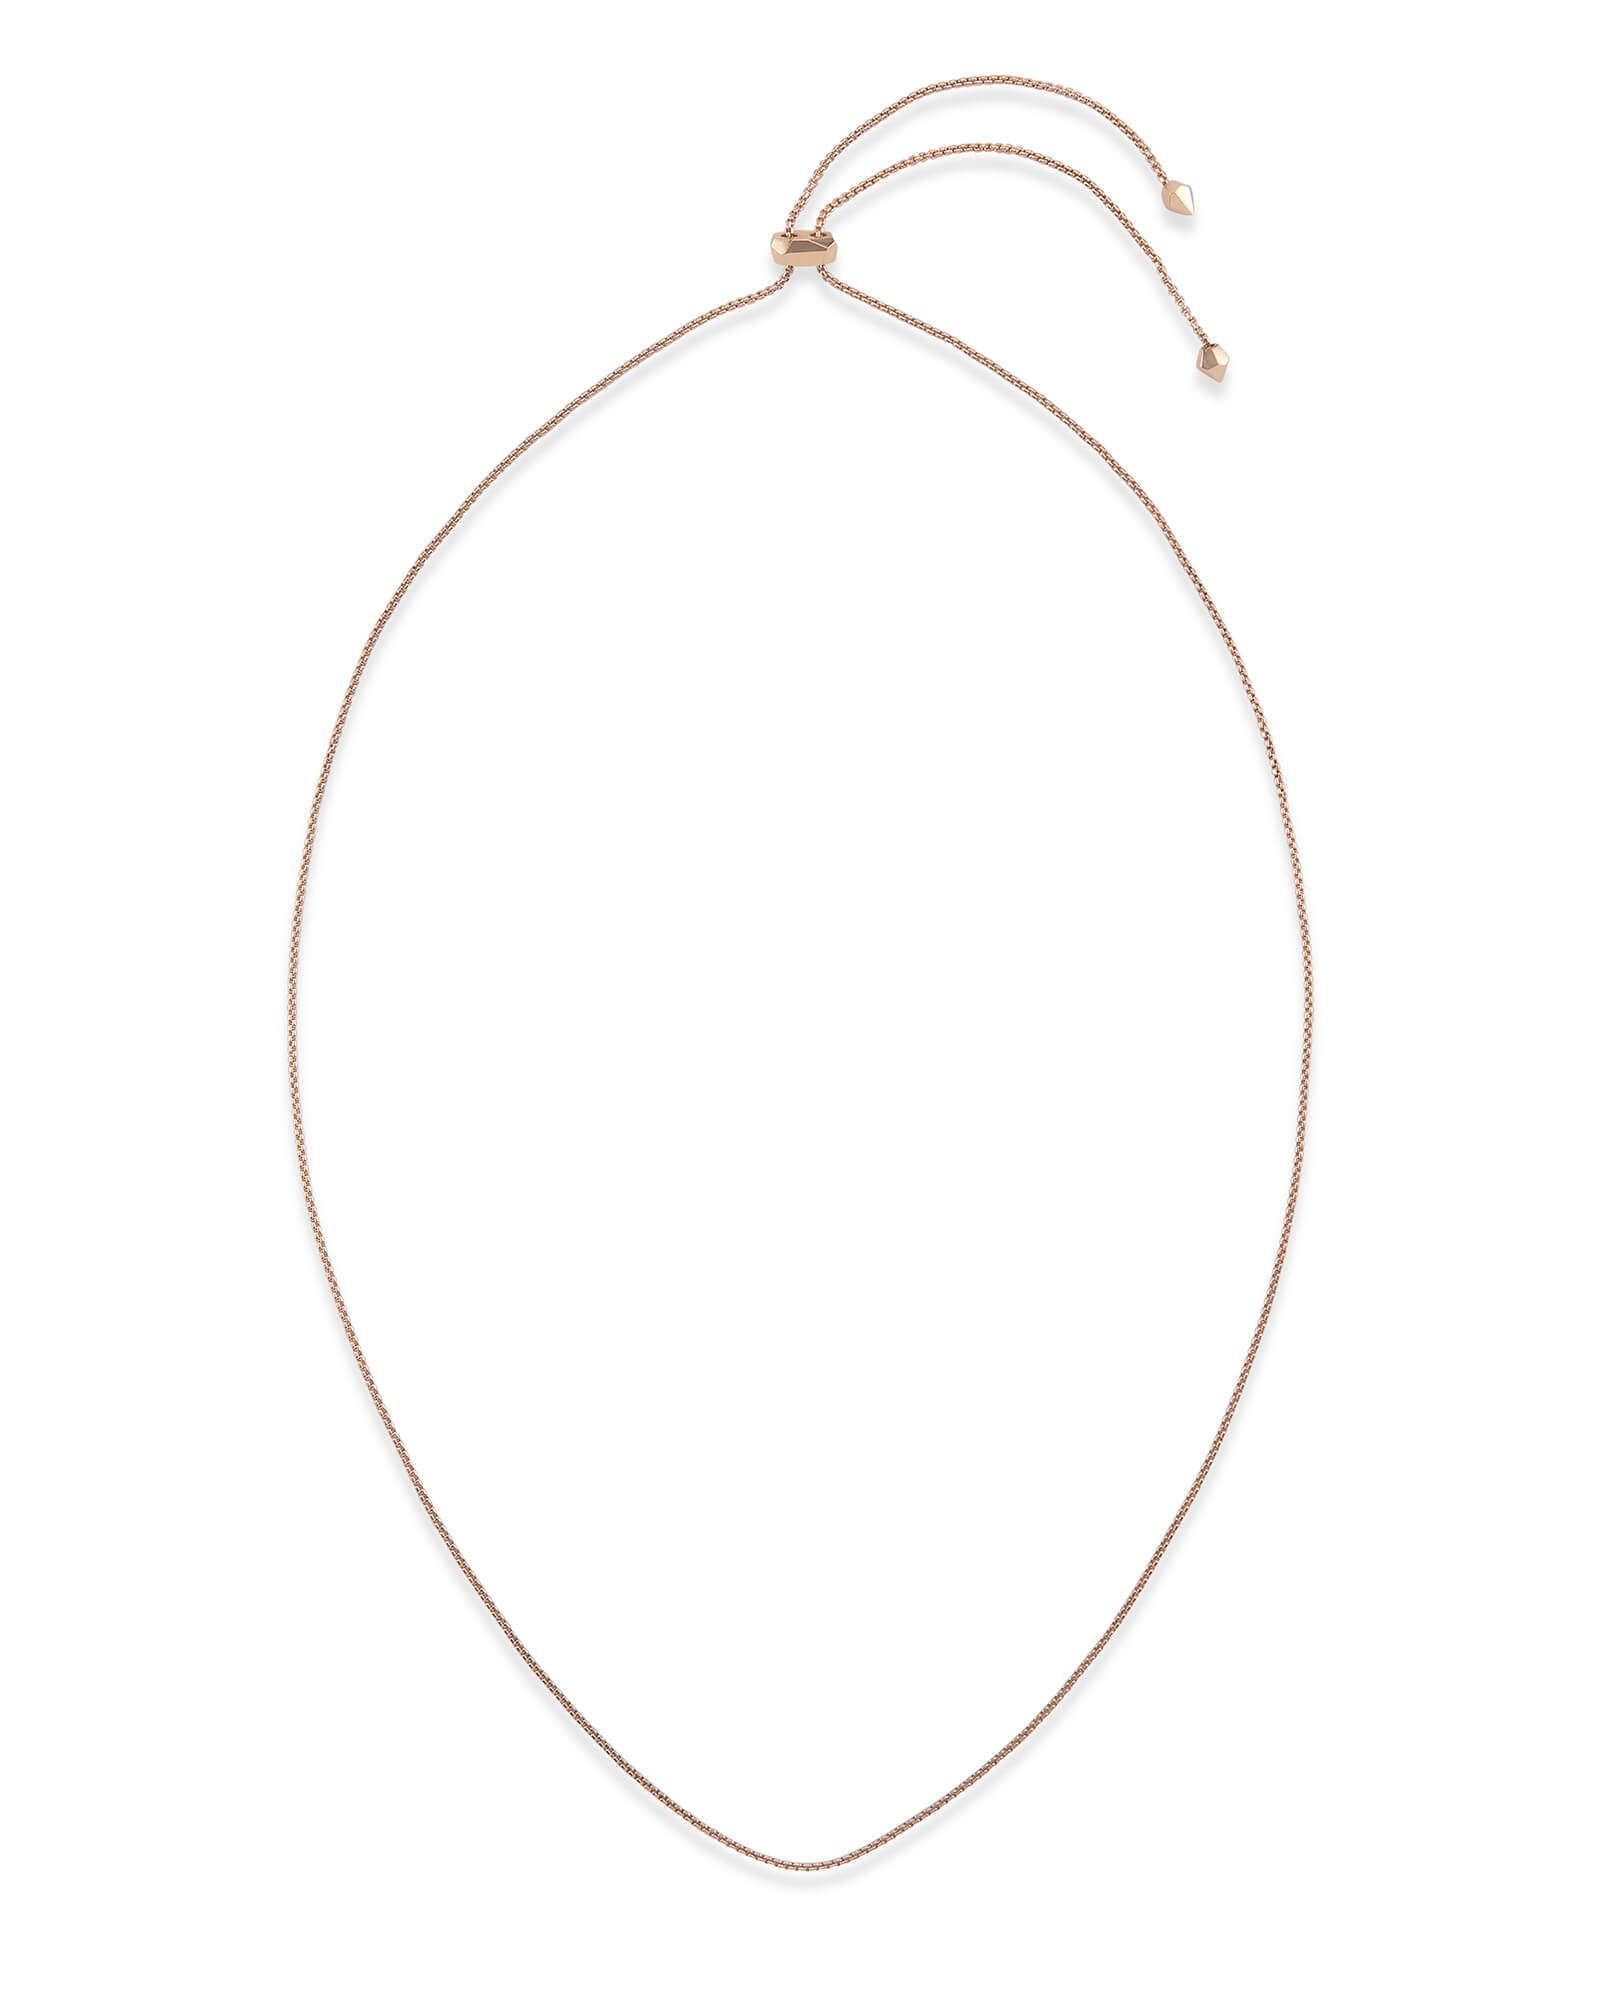 Thin Adjustable Chain Necklace in Rose Gold